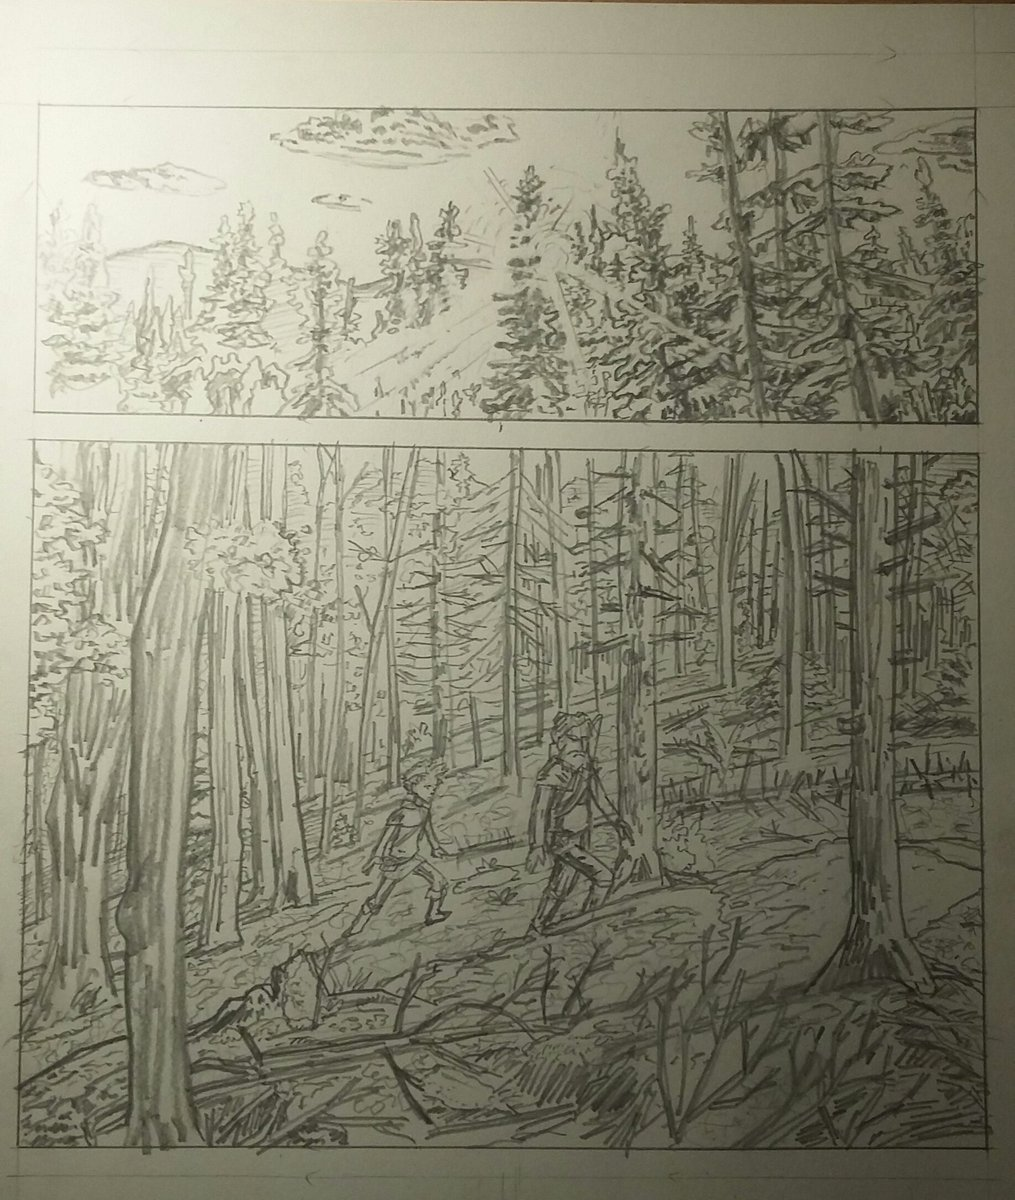 working some pages for a project just to see how it goes and get back to doing sequentials. excited to ink these, and fix some of my errant tangents.  #sequentialart #comicbookart #pencils #comicbook #visualstorytelling #forest #historicalfantasy<br>http://pic.twitter.com/drRYLEH5ZW